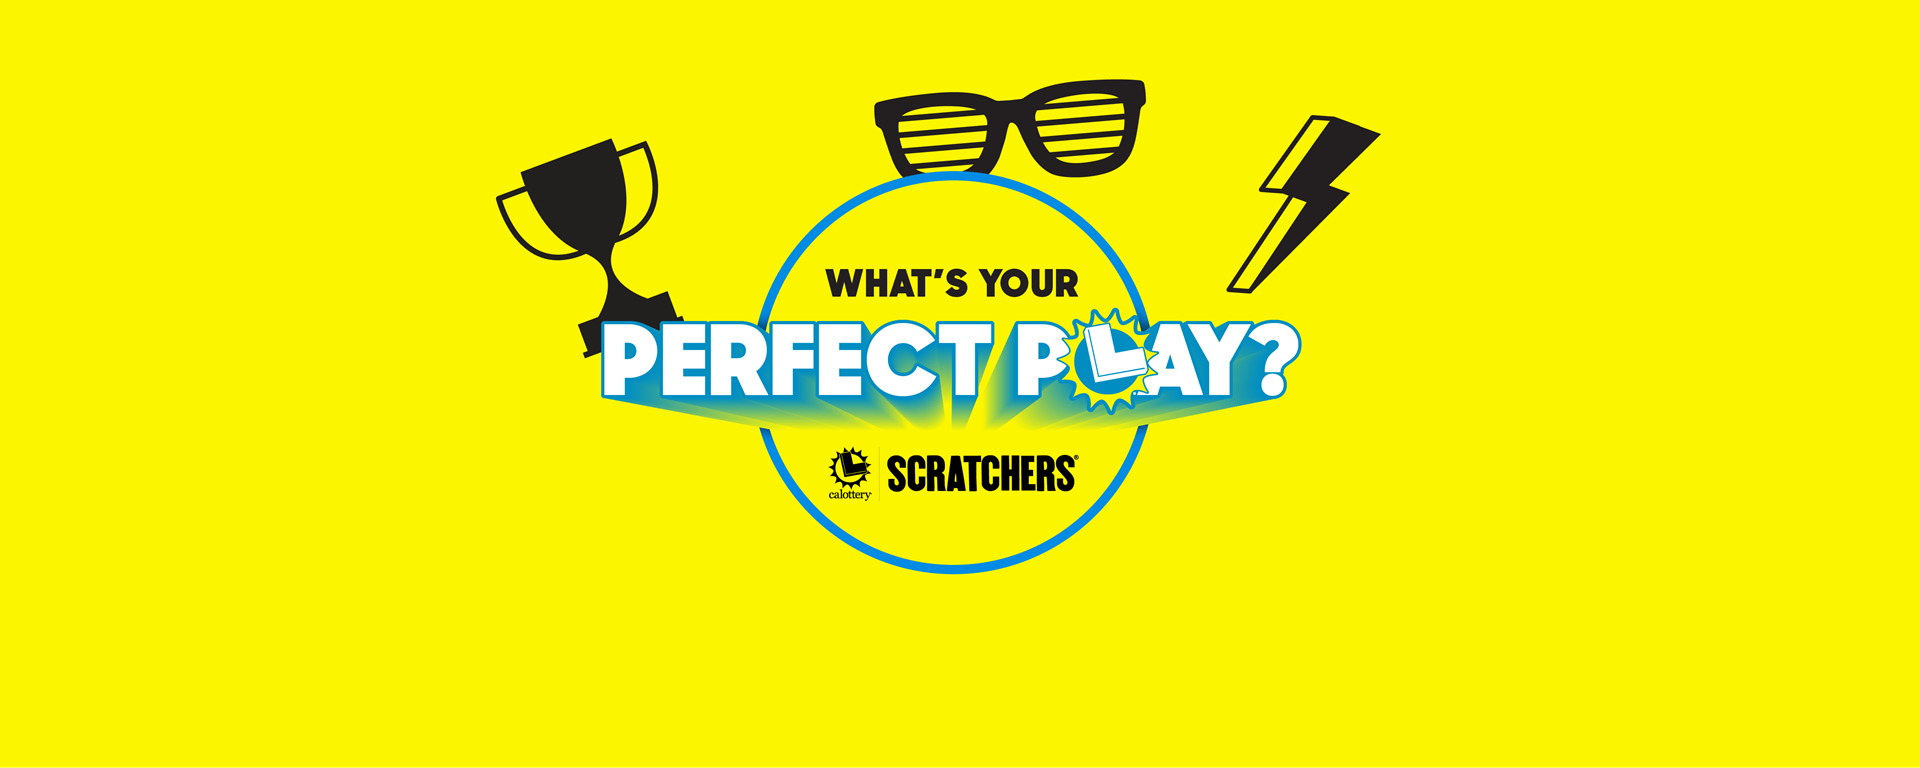 Scratchers, Whats your perfect play on a yellow background